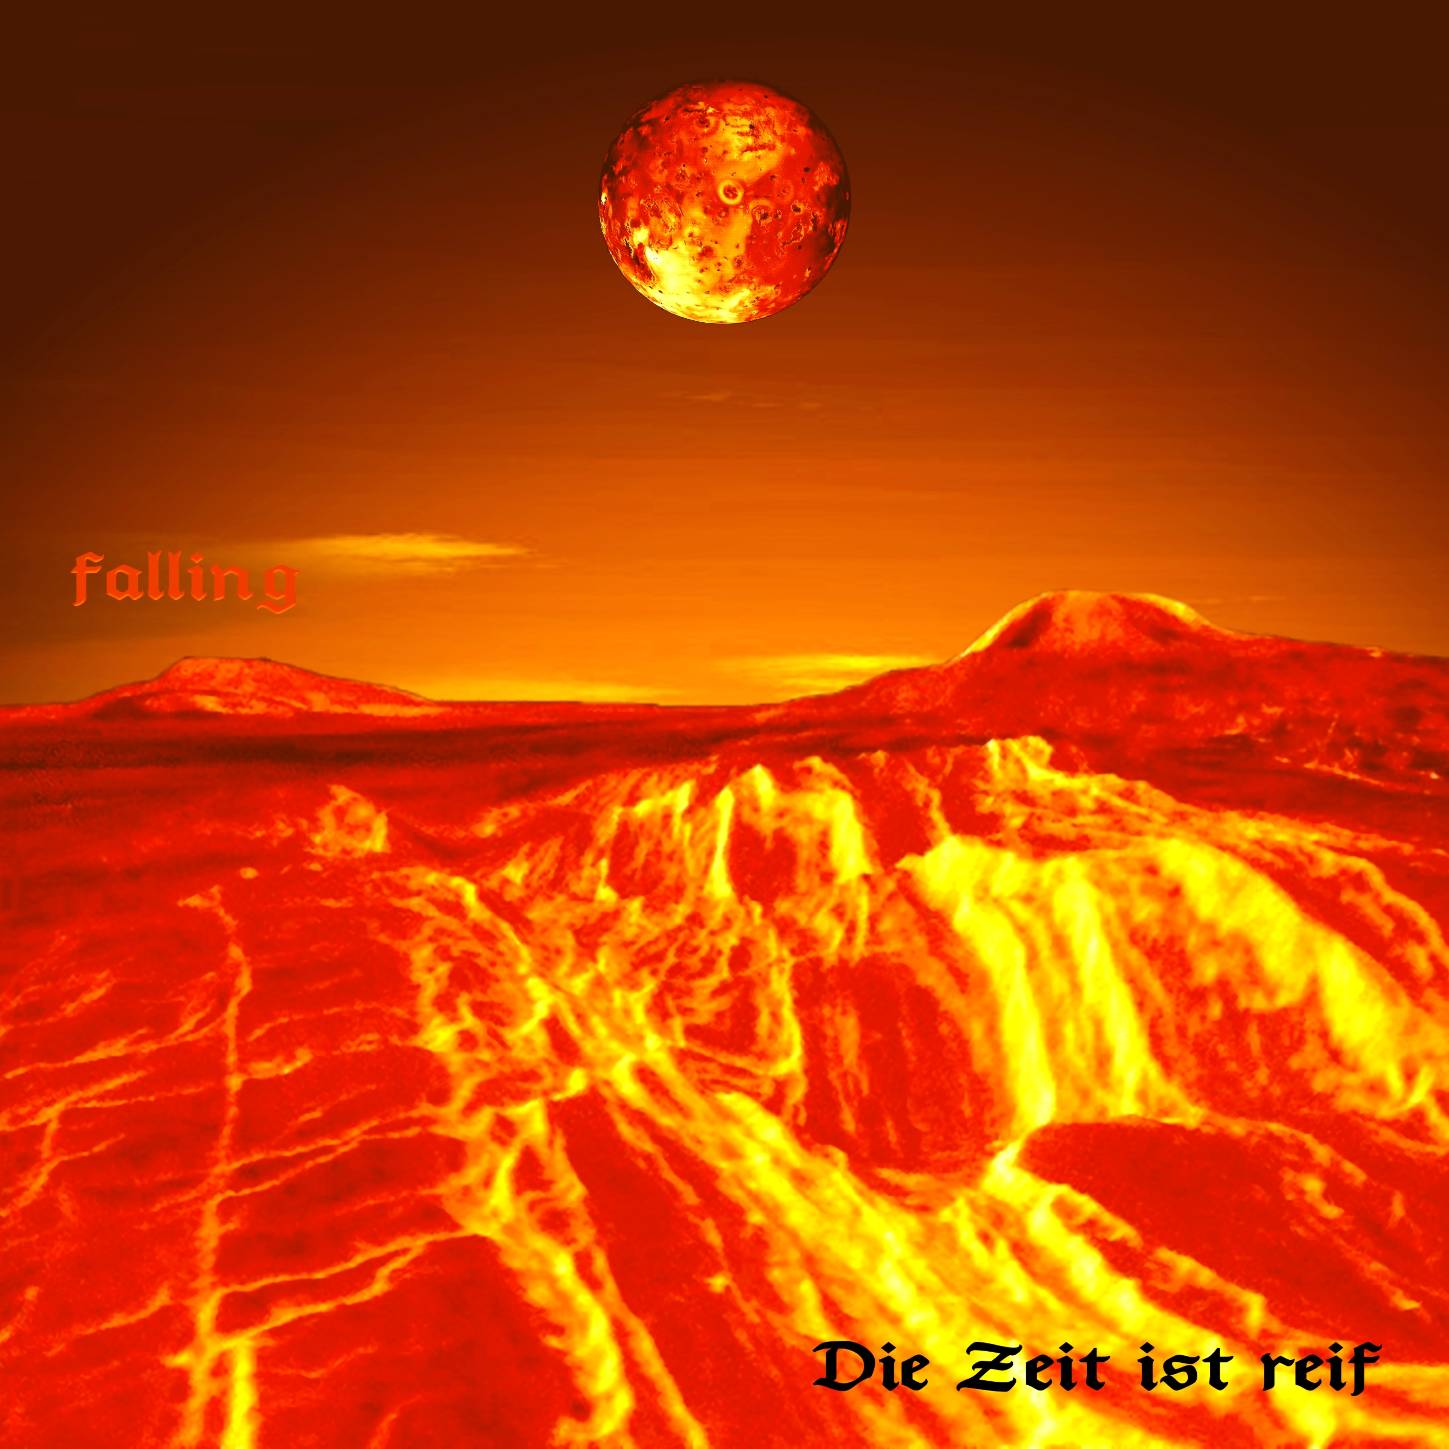 CD Cover - PROJECT FALLING - Die Zeit ist reif